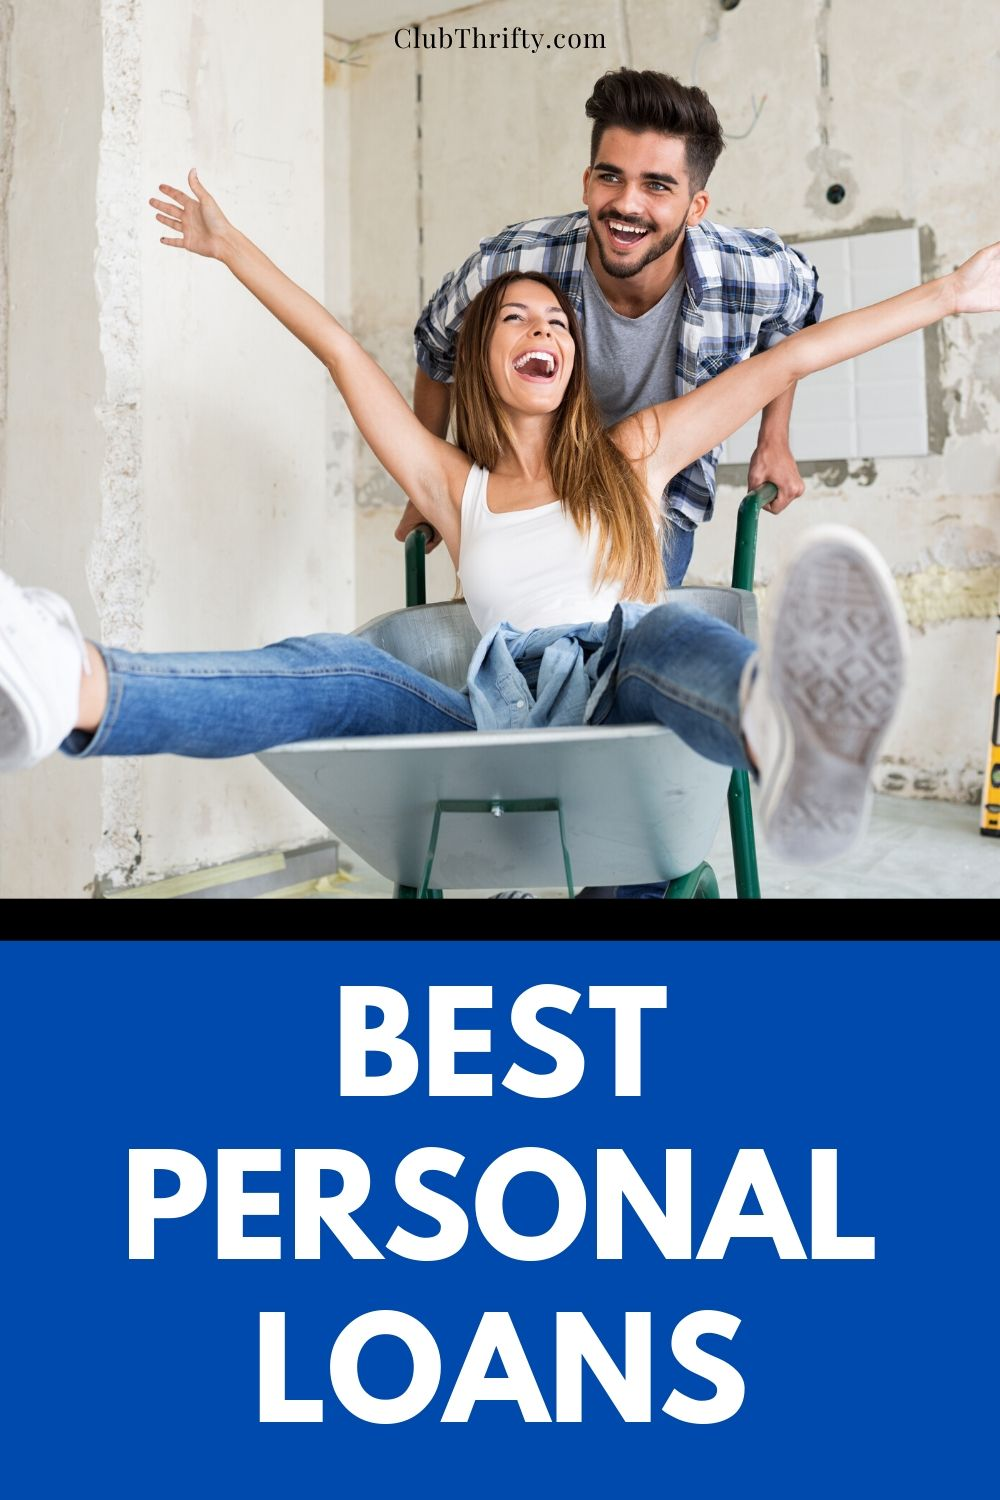 Best Personal Loan Rates And Companies Compare Top Lenders In 2020 Personal Loans Loan Company Loan